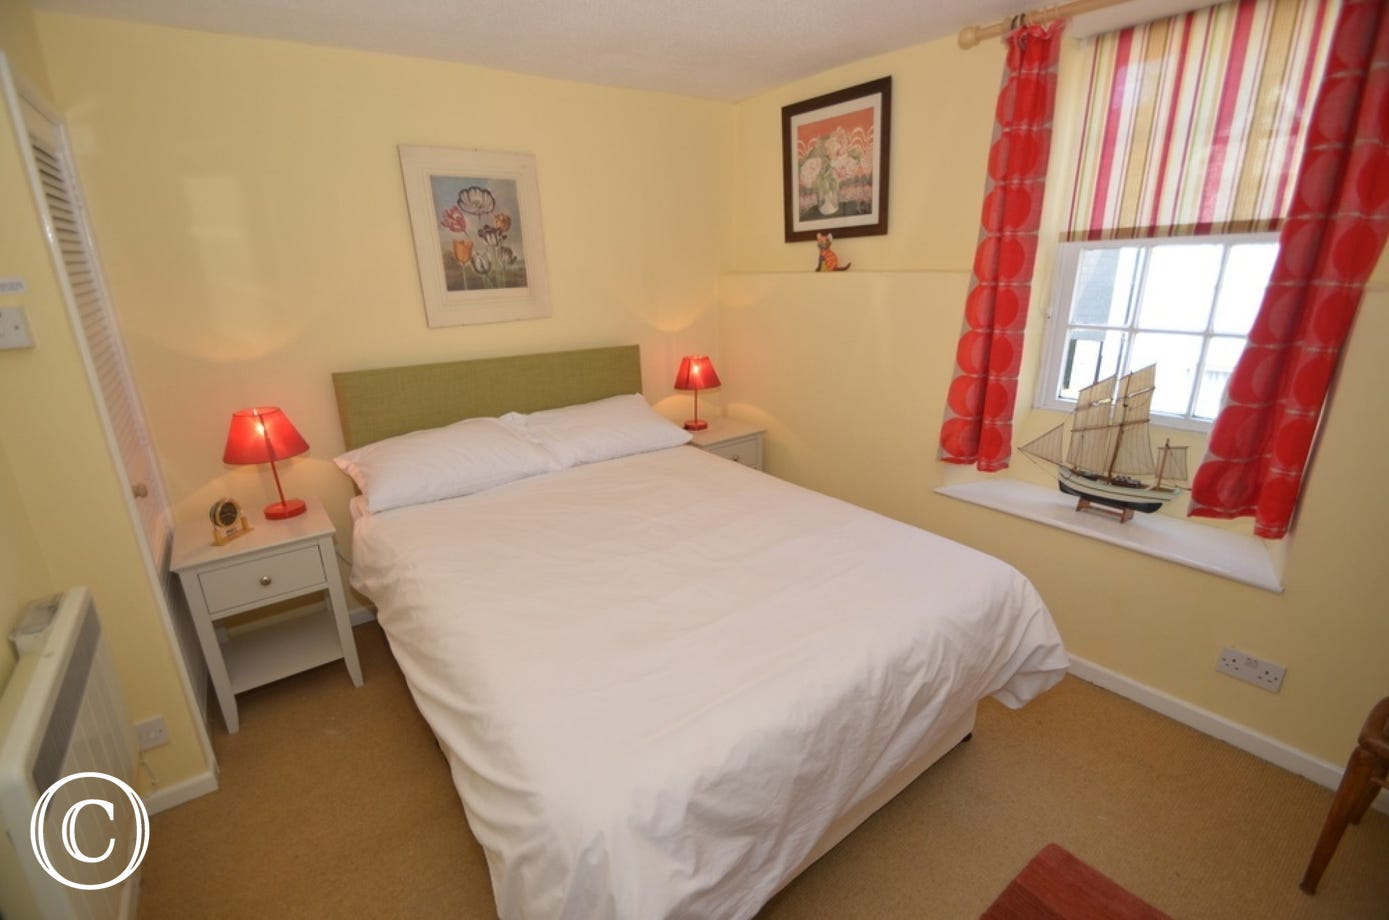 Bedroom 1: At the front of the property, double divan bed with bedside cabinets, side lights, built-in wardrobe and chair.